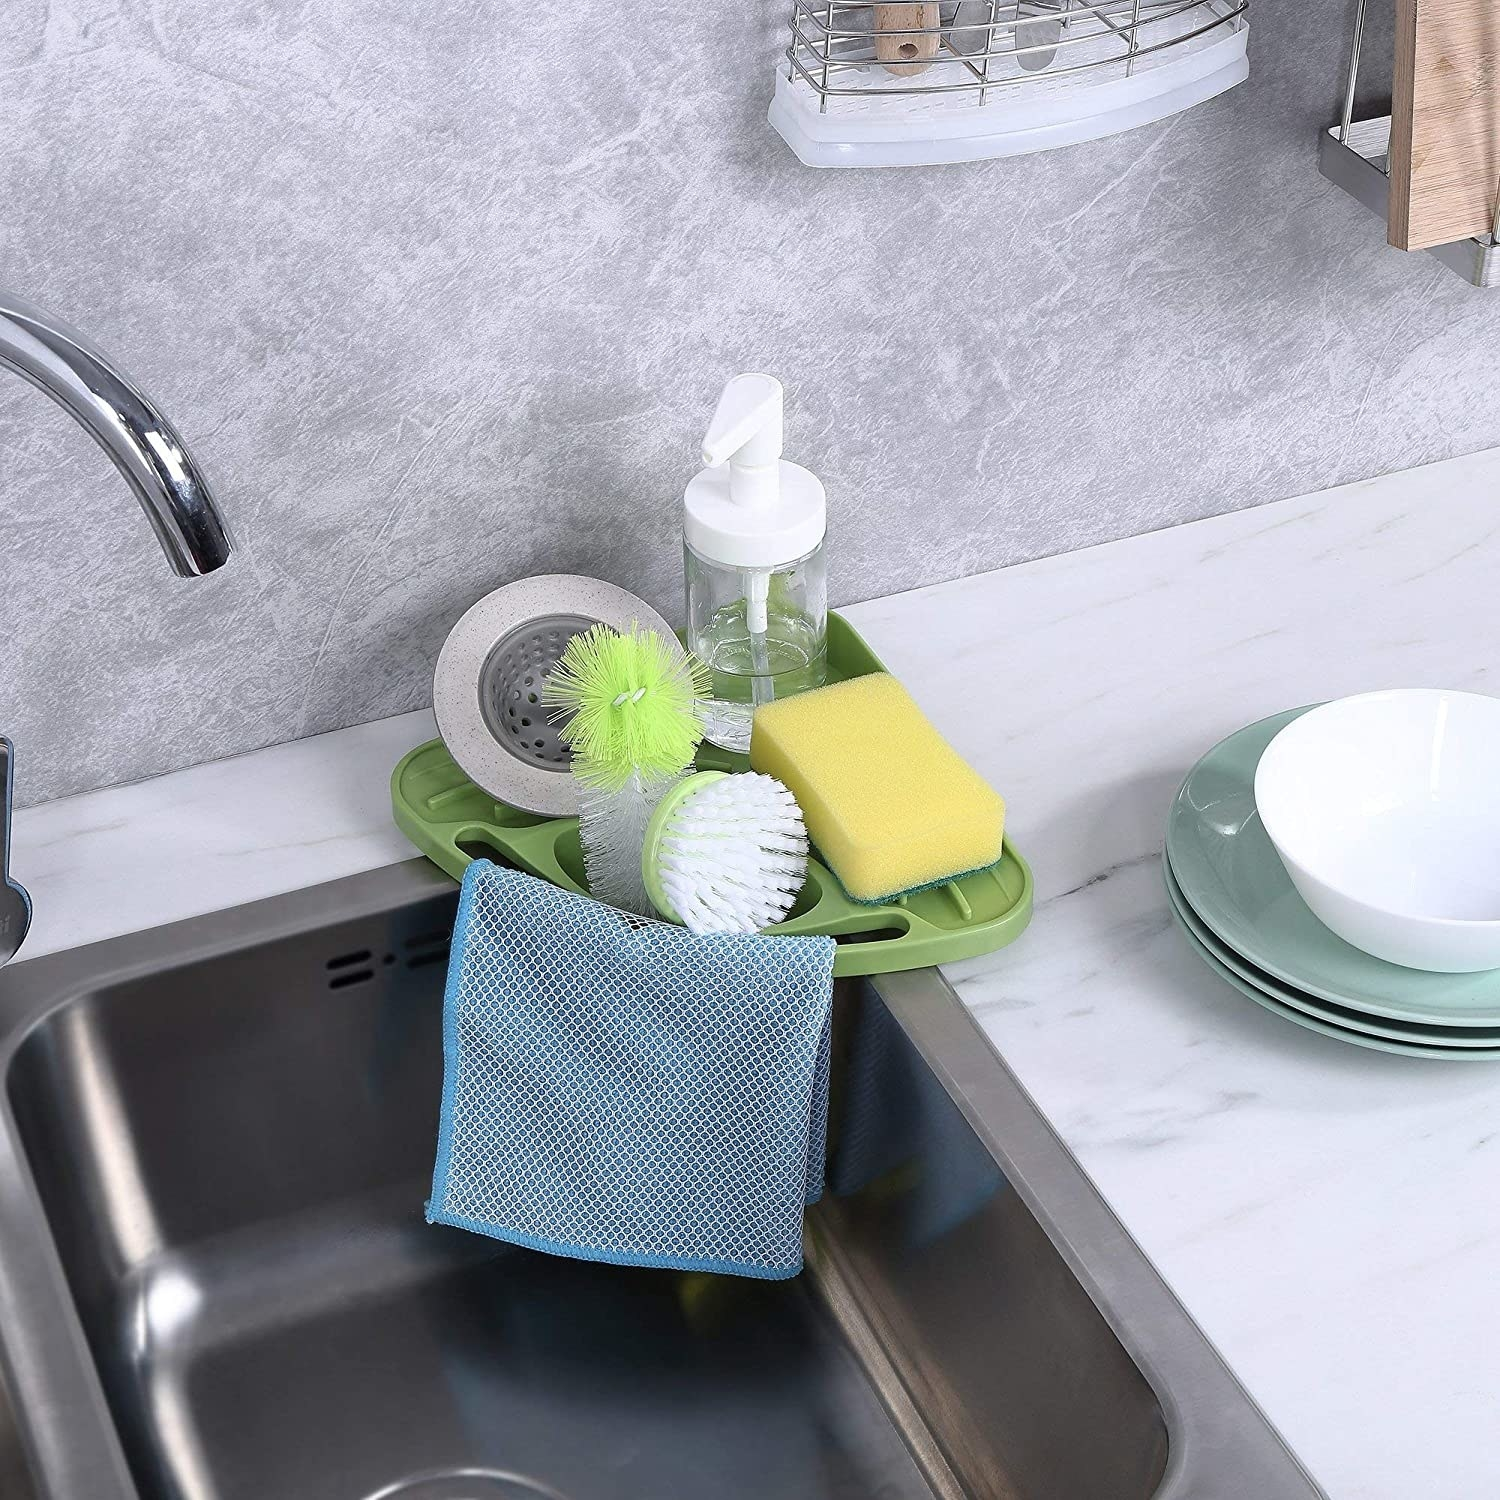 the caddy suctioned to on corner of the sink and holding a rag, two brushes, a sponge, a drainer, and dish soap